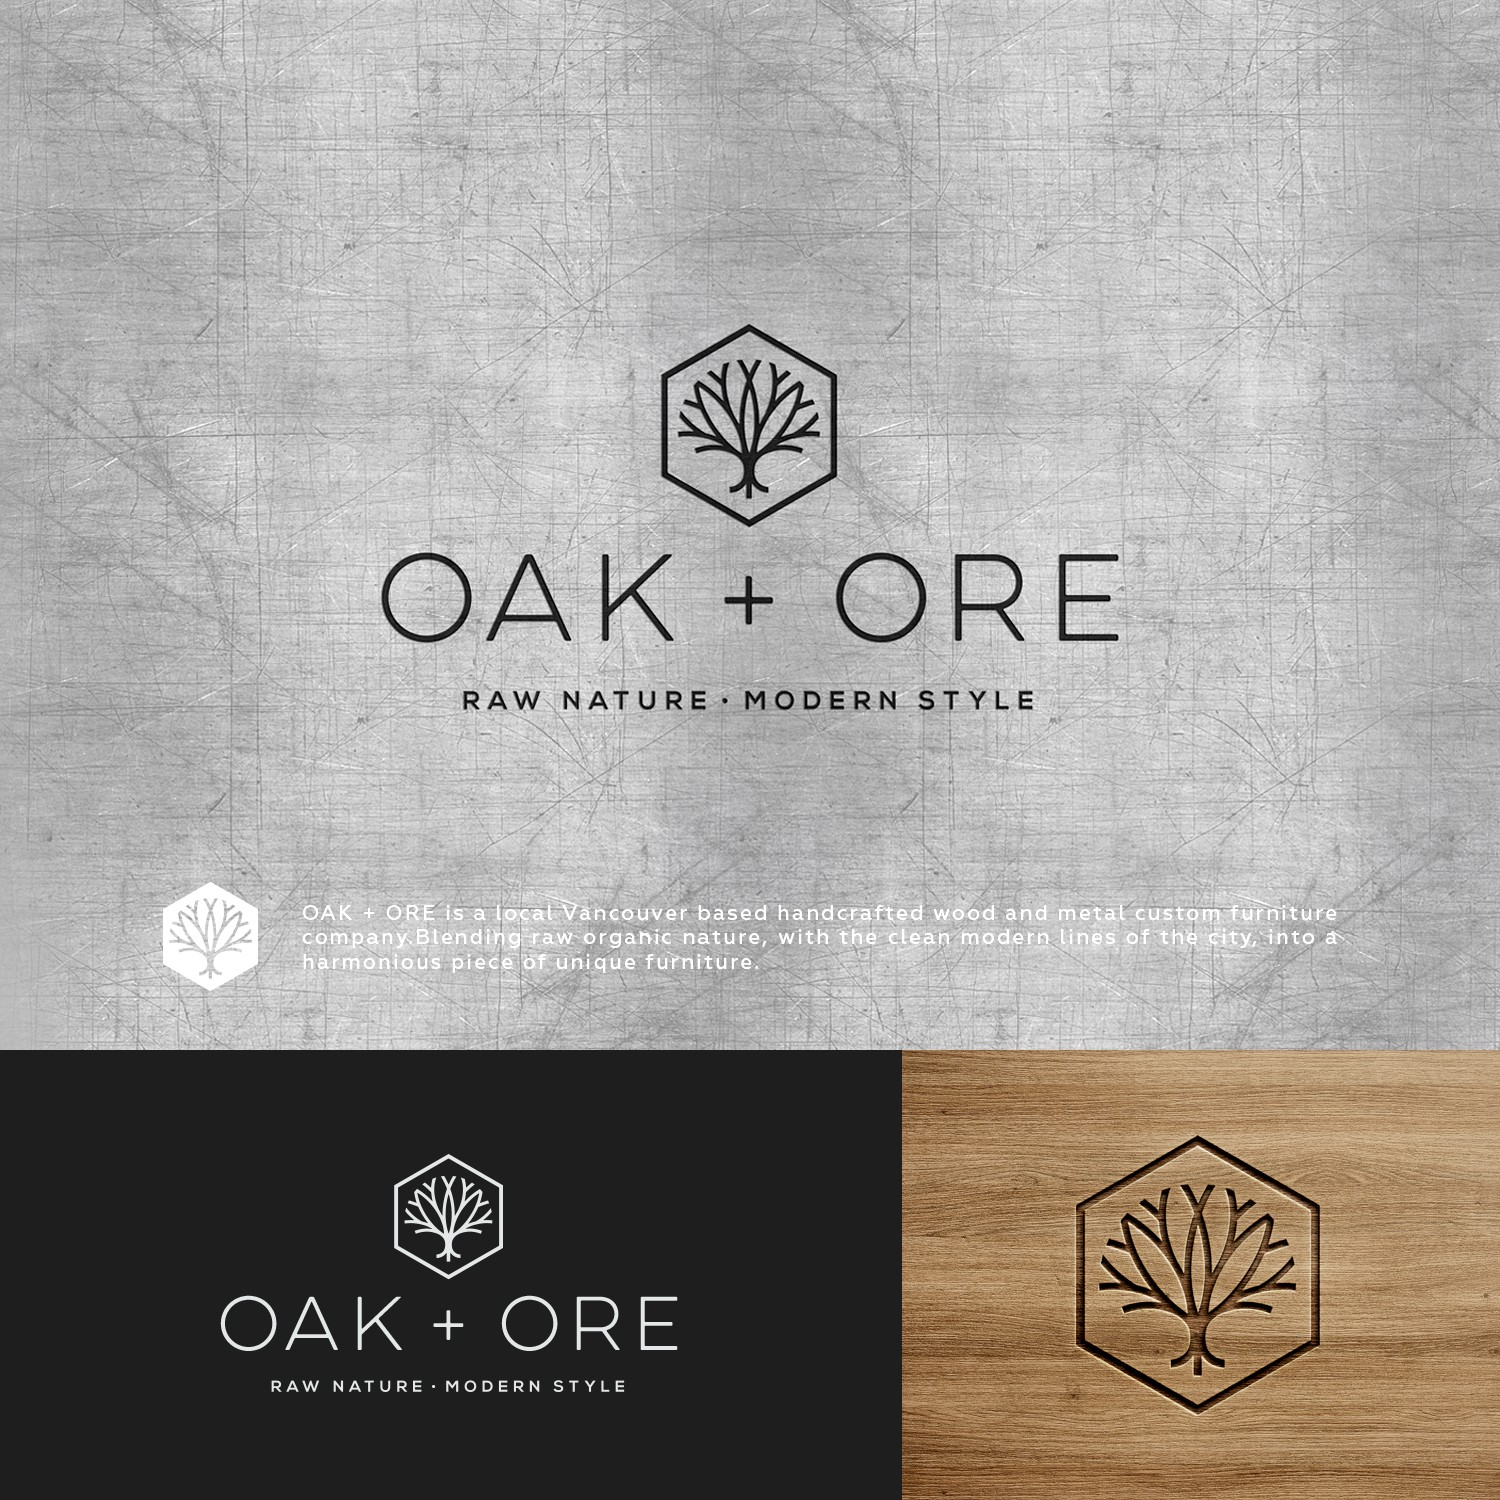 Design a modern logo for hand crafted wood and metal furniture company